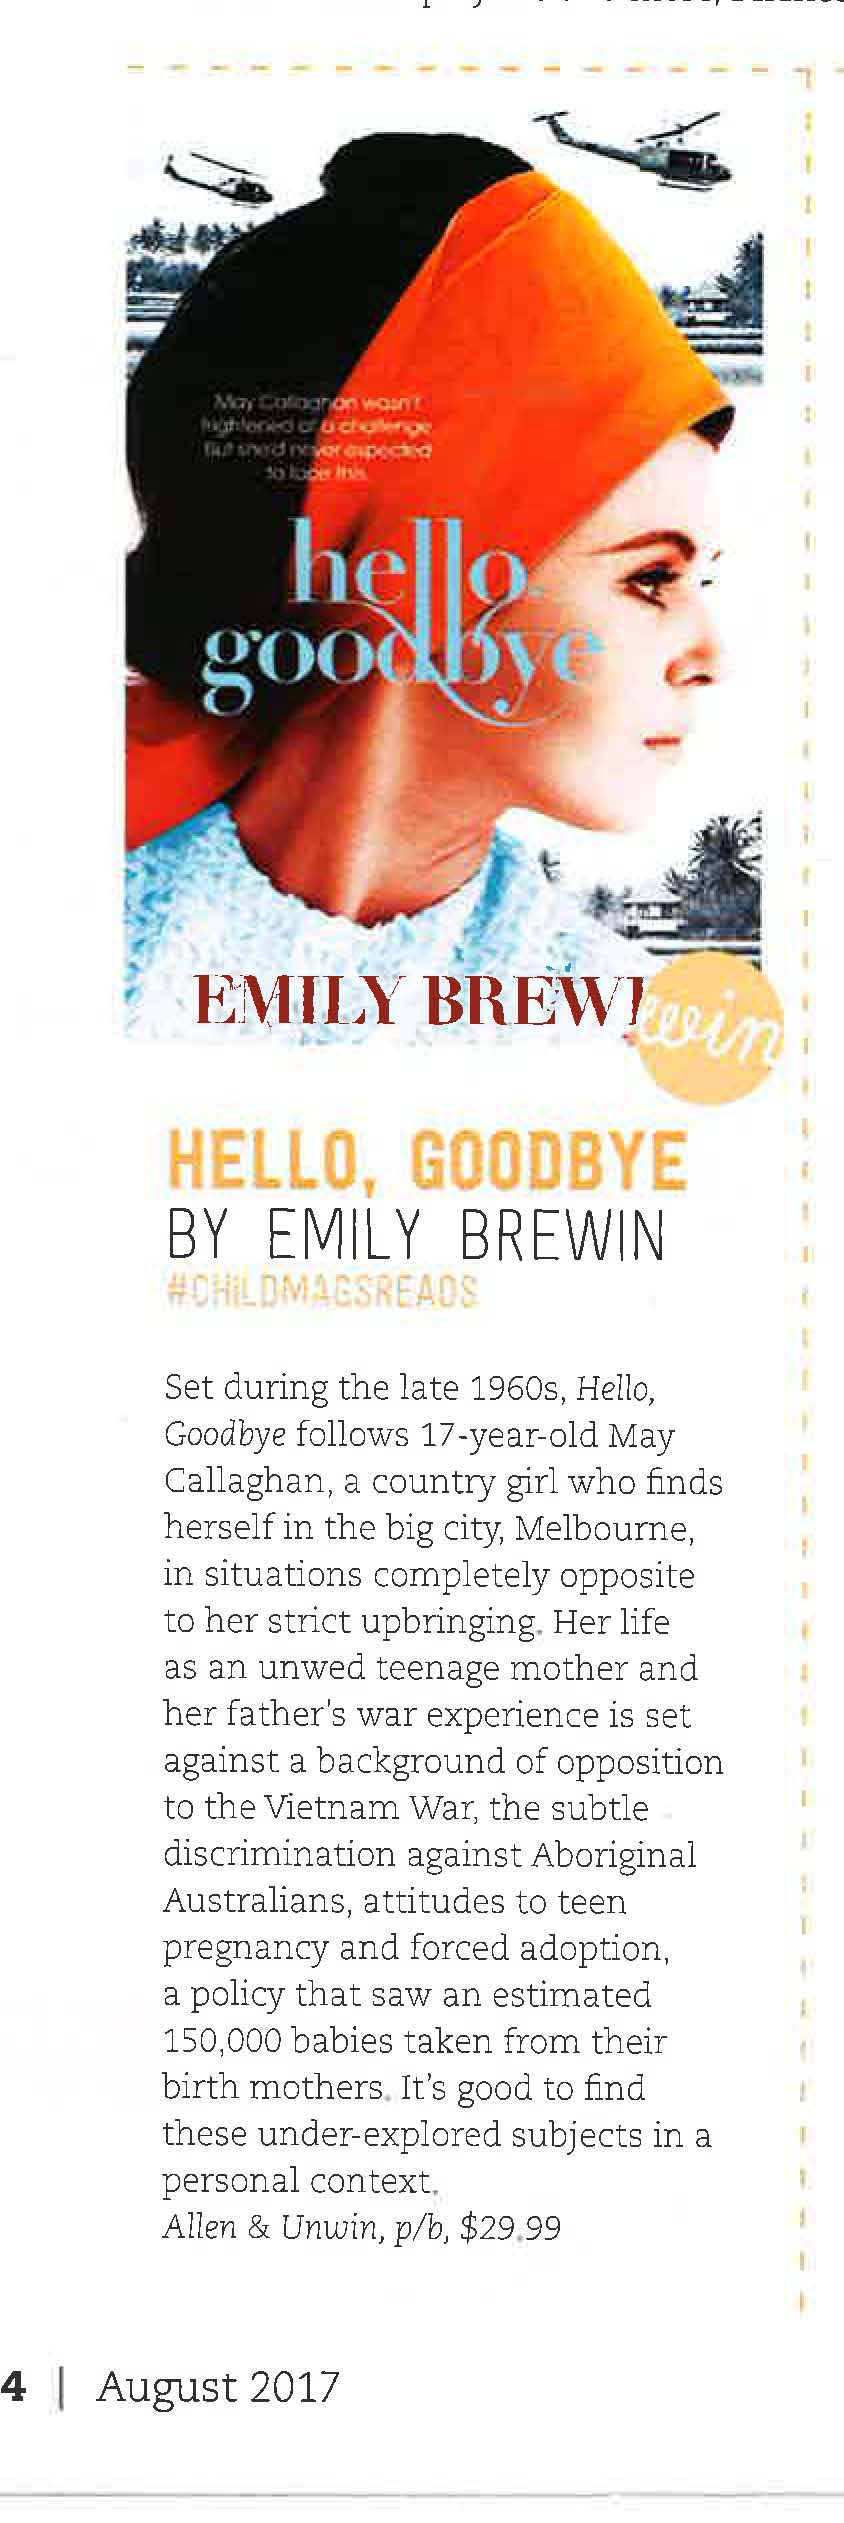 [SYDNEY MELBOURNE] Child Magazine clipped - Review August issue.jpg